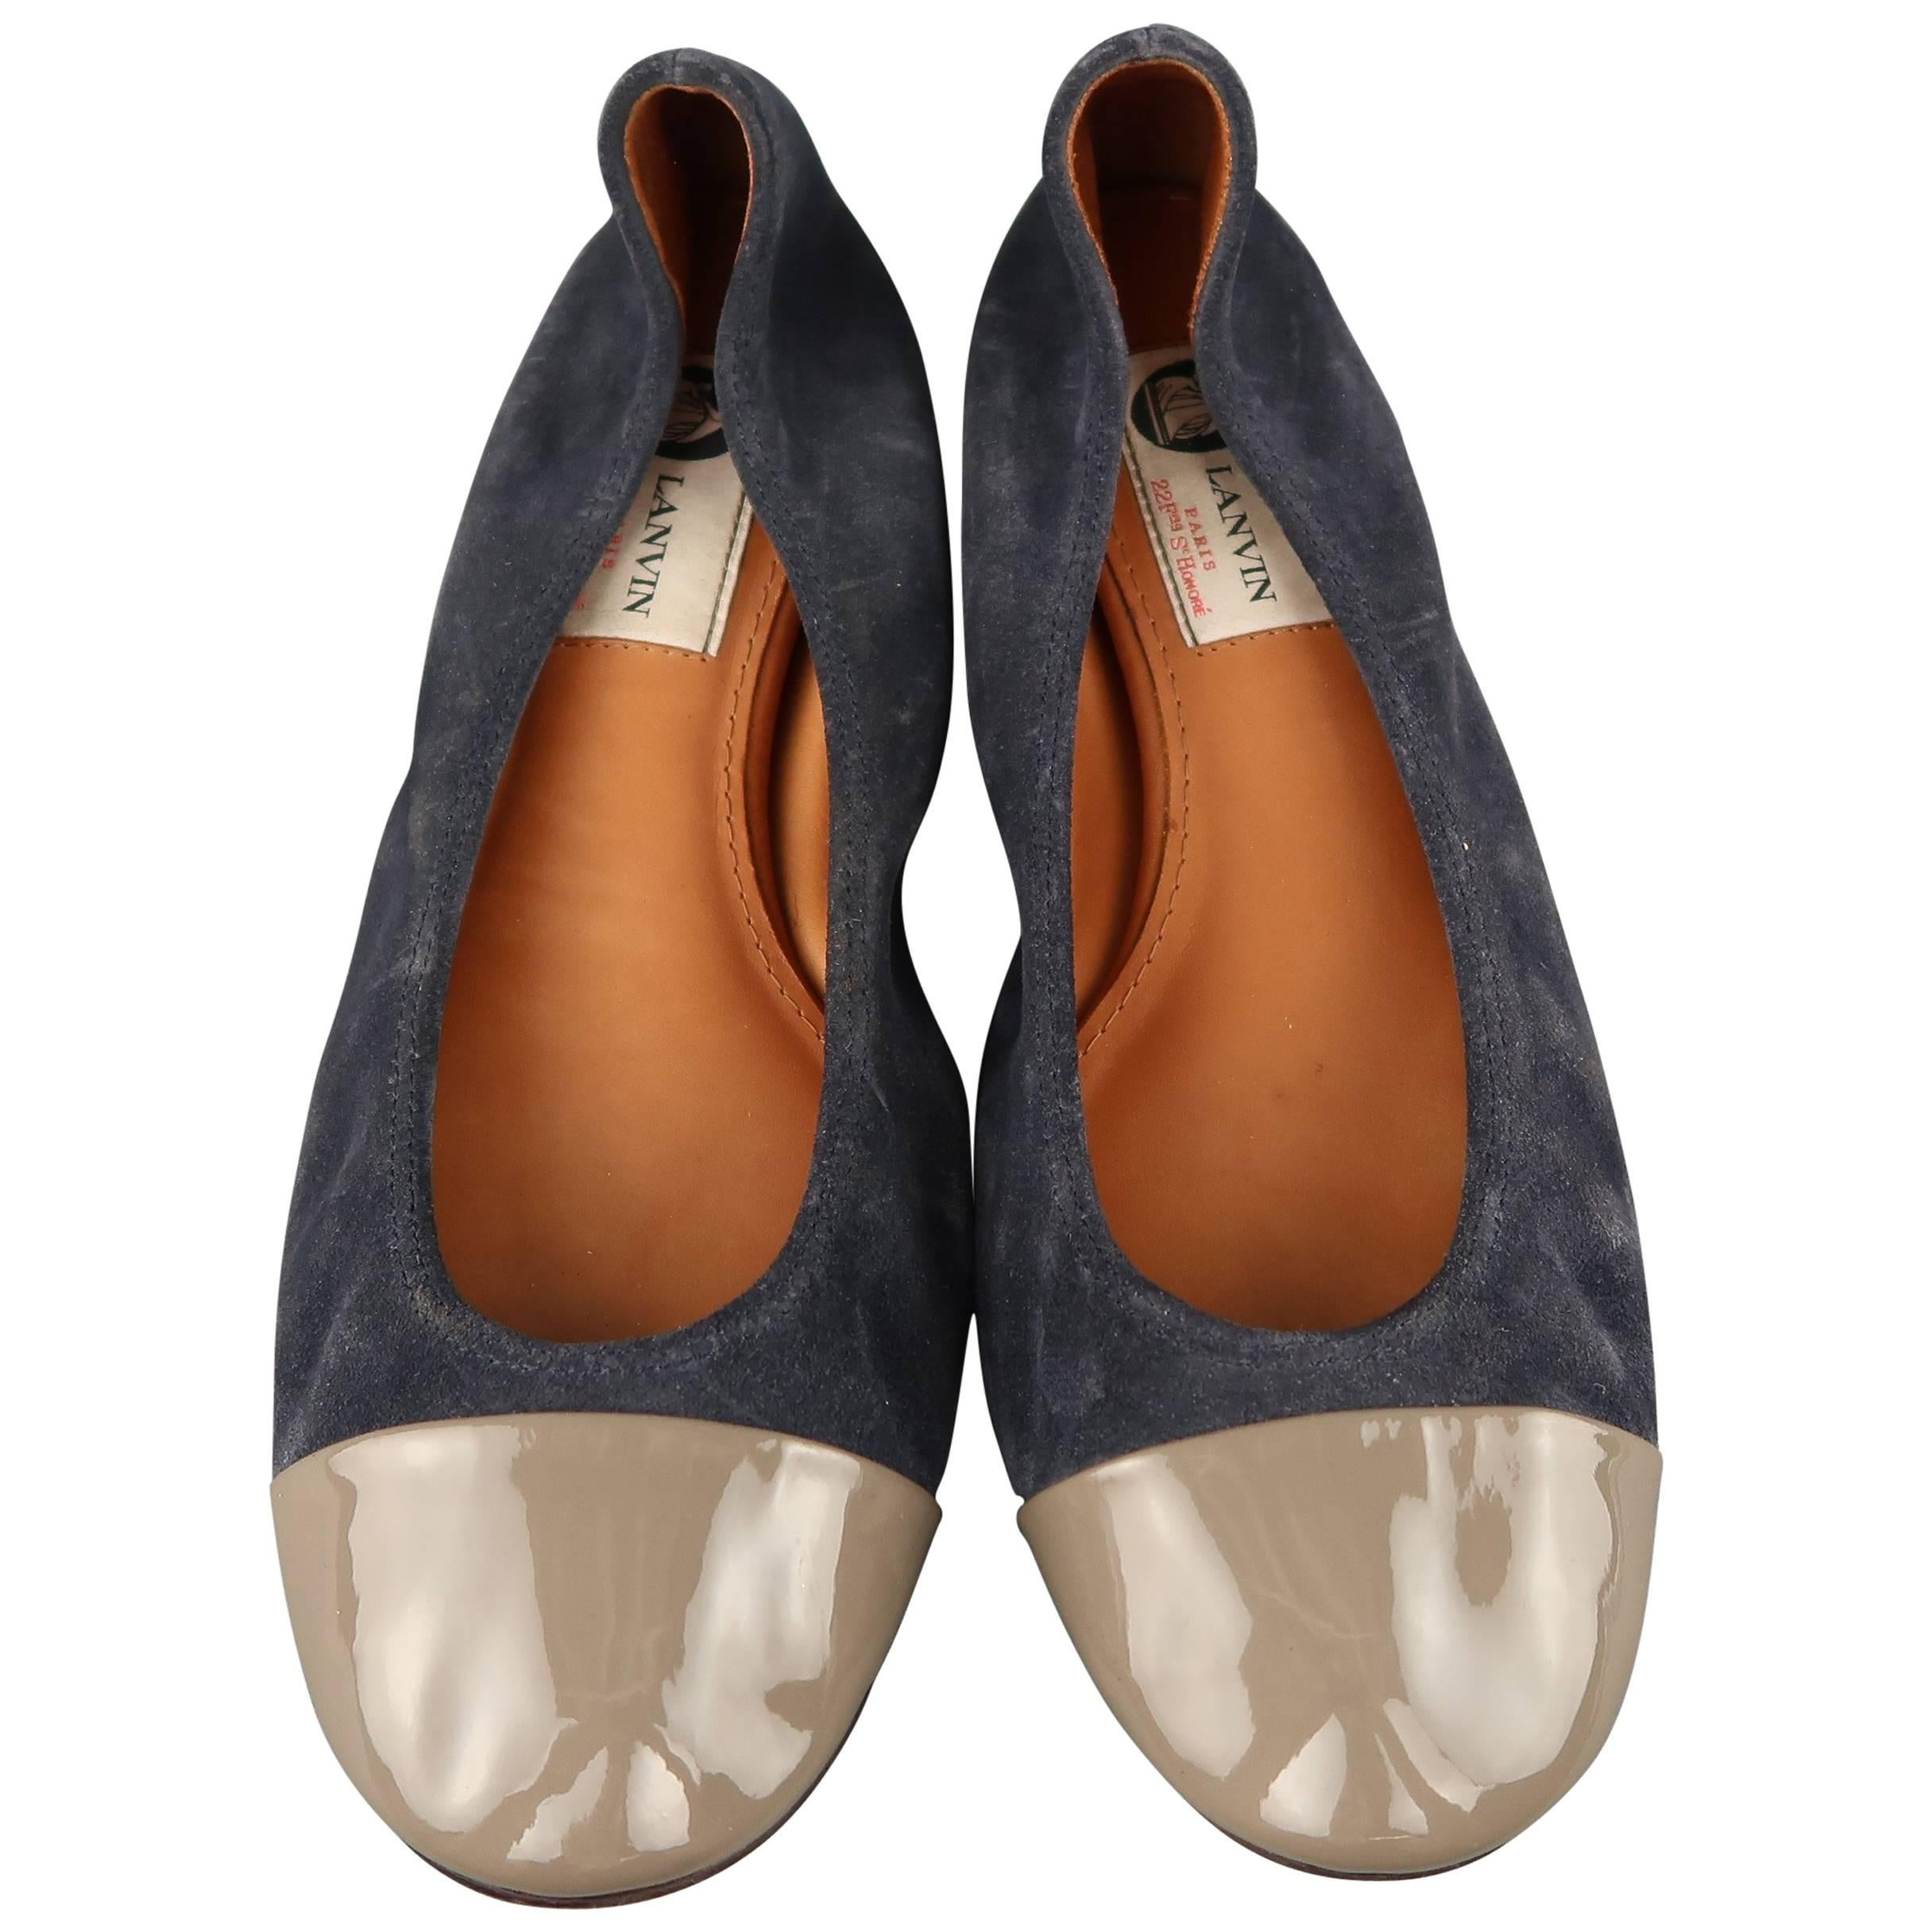 a3f2813c02752 LANVIN Size 9 Navy Suede Gray Patent Leather Cap Toe Ballet Flats at 1stdibs